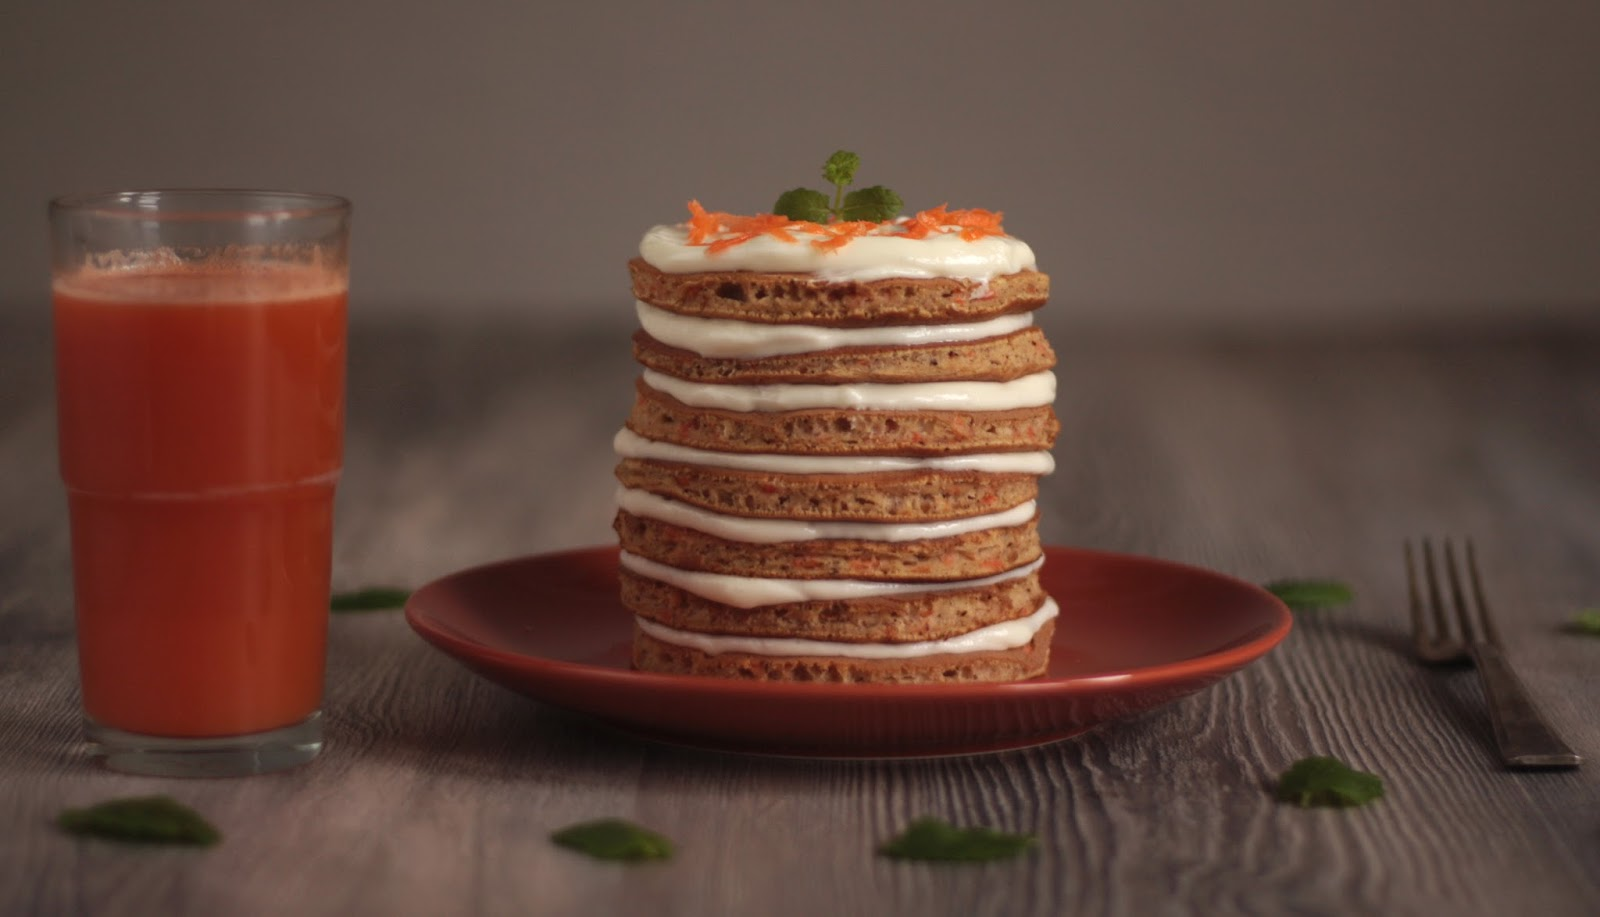 A moist pancake version of the classic carrot cake layered with the sweet cream cheese frosting - the perfect recipe for Easter breakfast or dessert. Recipe brought to you by Pancake Stories.